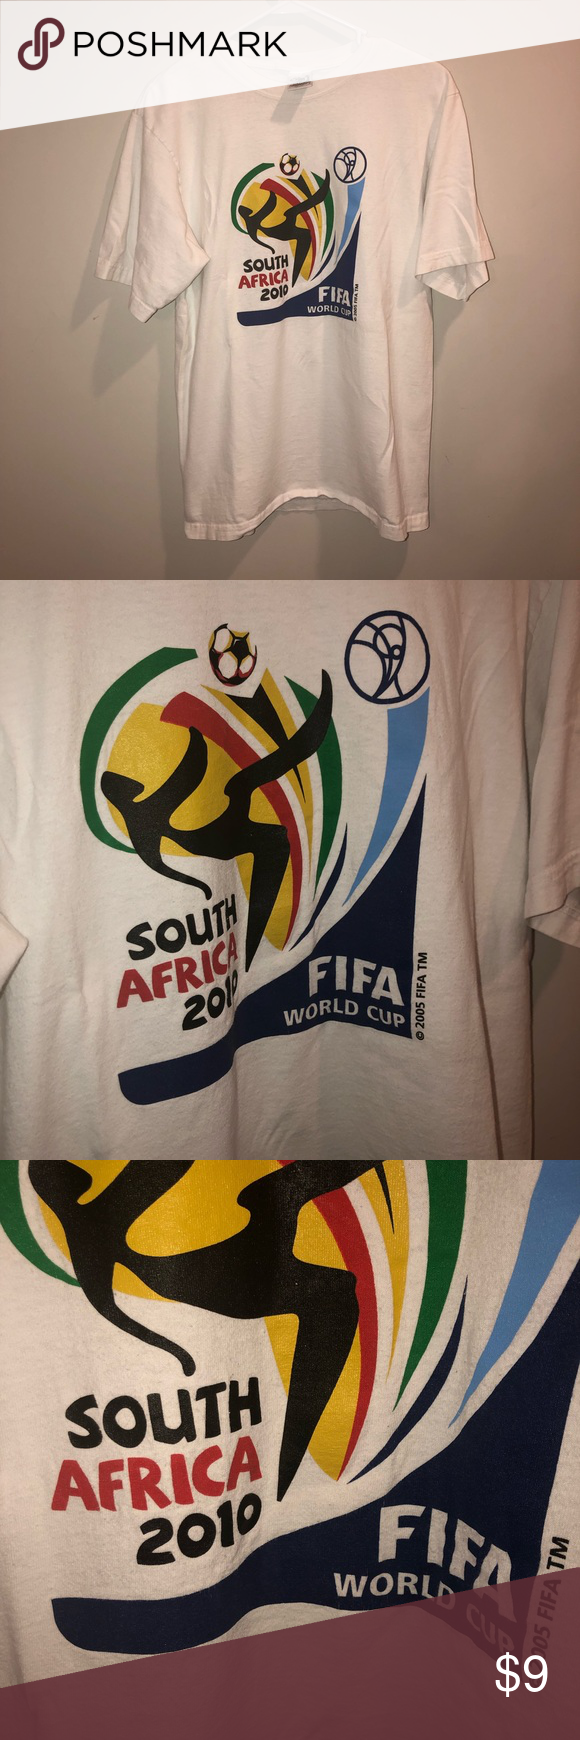 adidas south africa world cup jacket